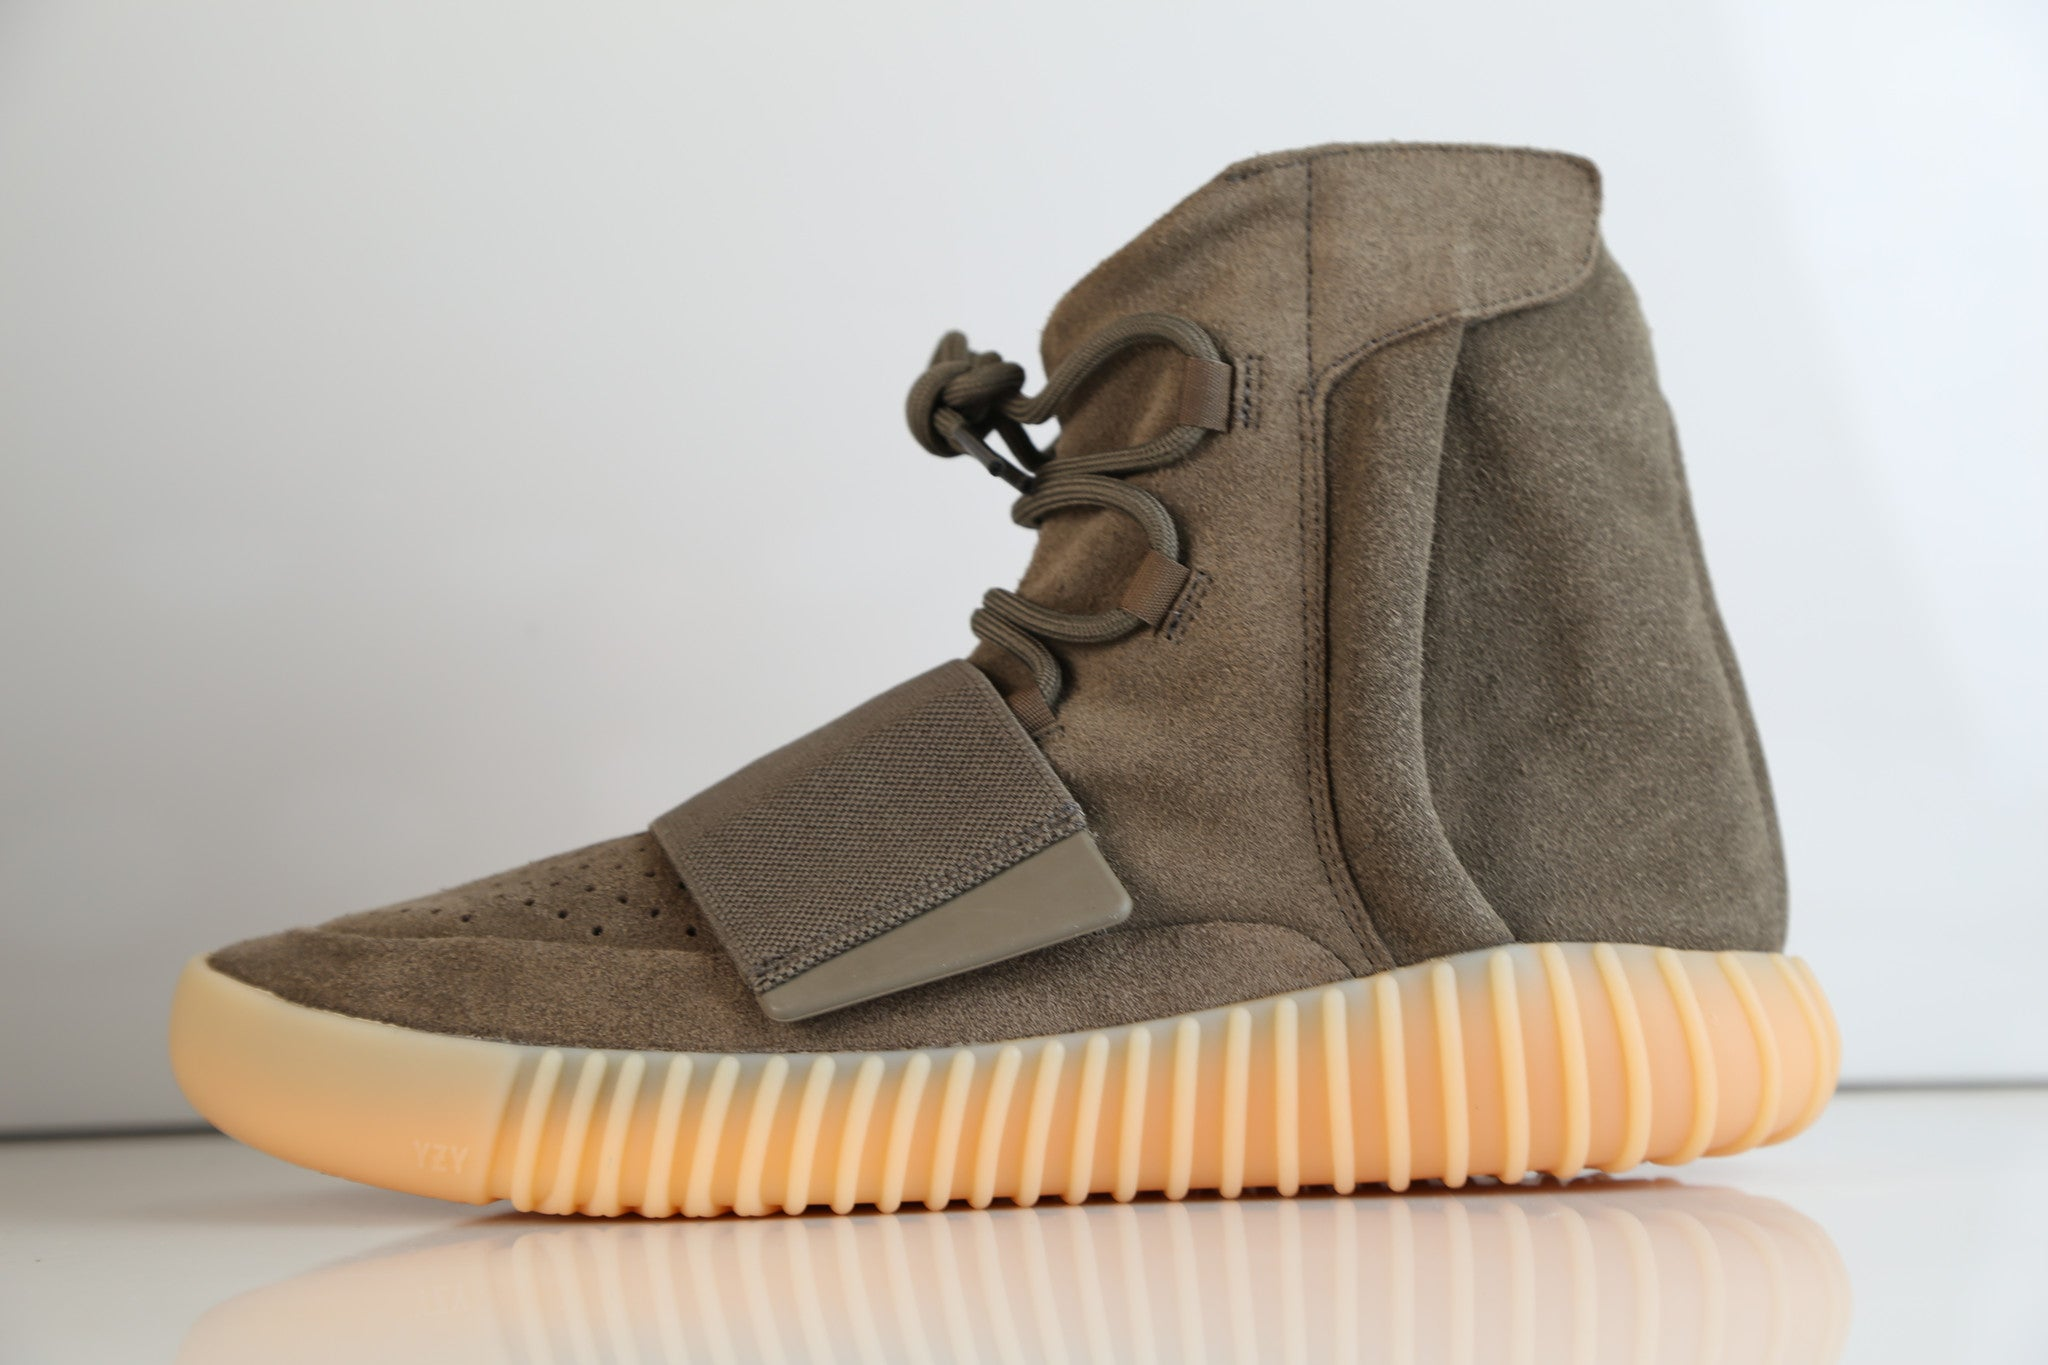 save off 31e20 cf270 Adidas X Kanye West Yeezy Boost 750 Light Brown Chocolate ...